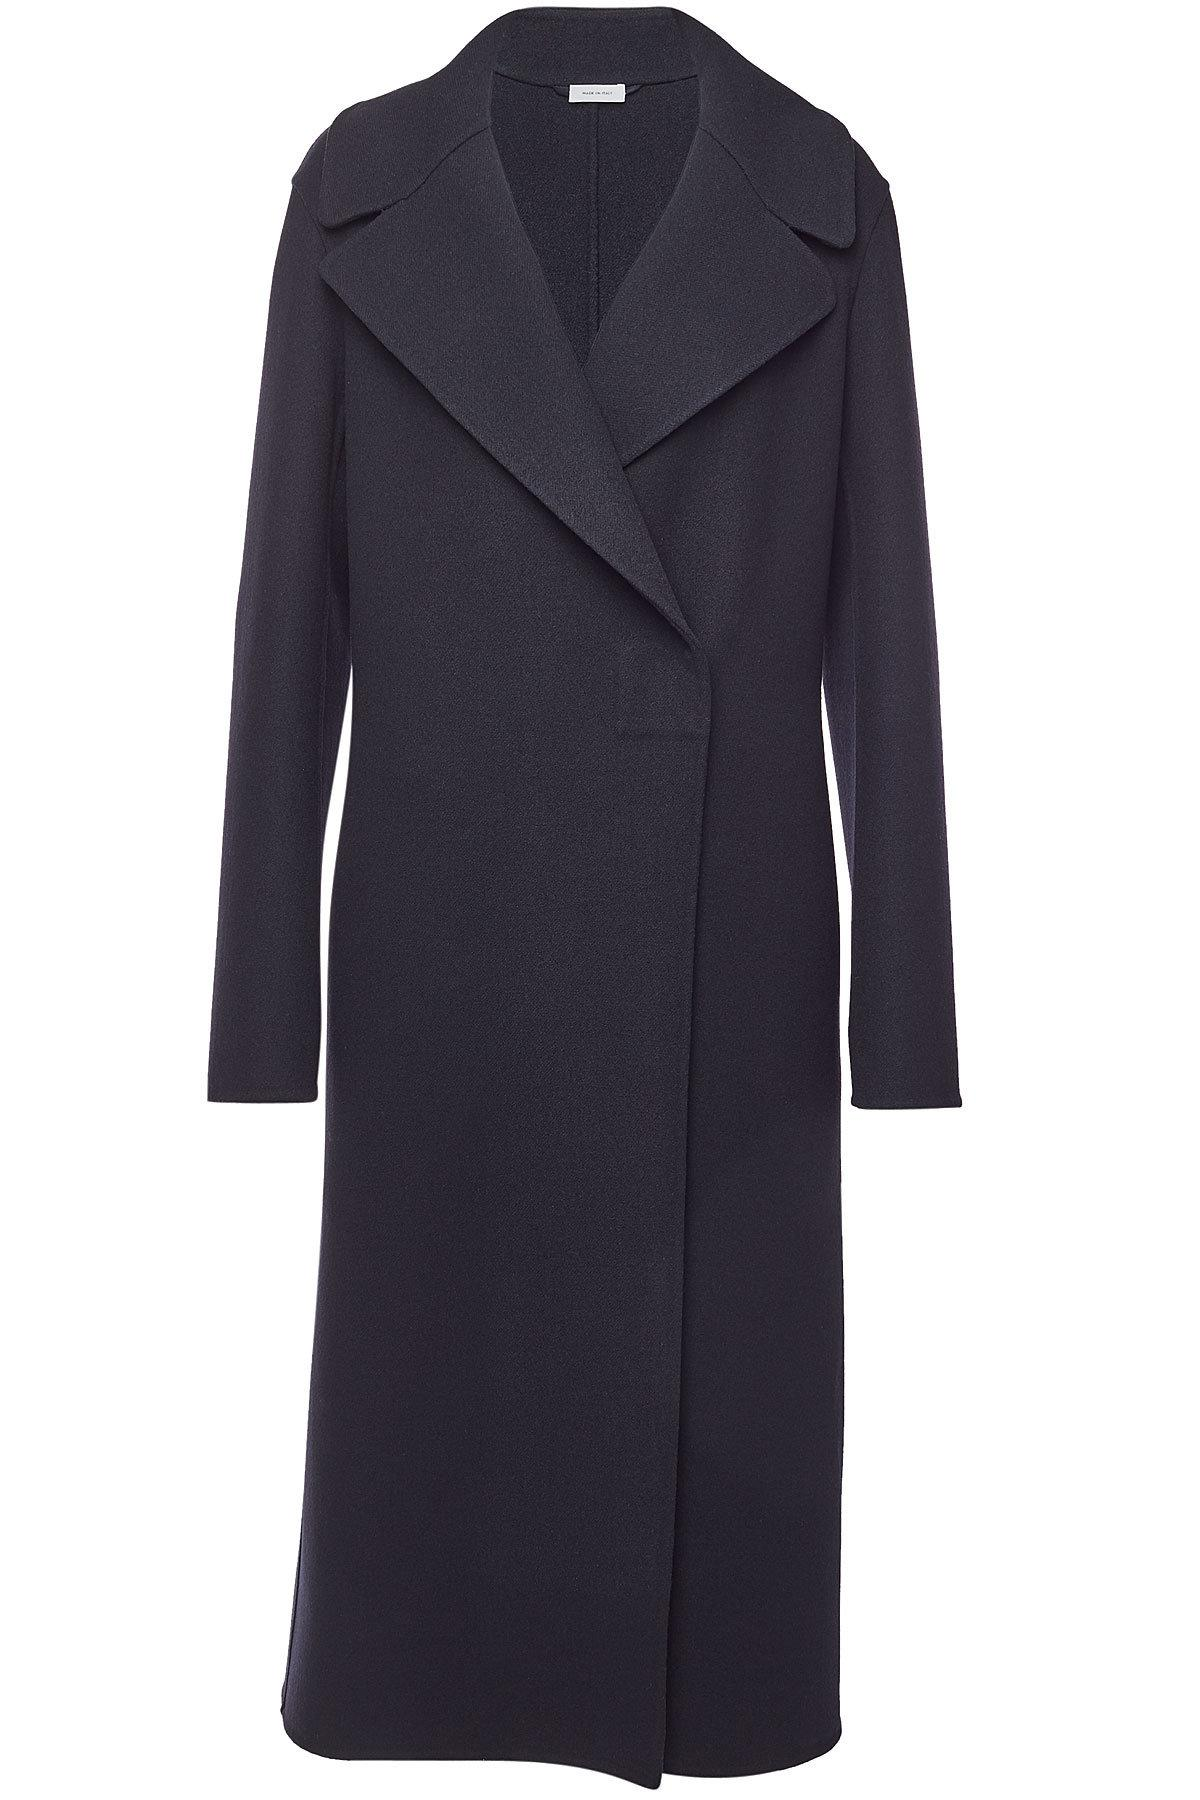 Blue Fleece Sander Lyst Coat In Franco Jil Wool ROqnz0w